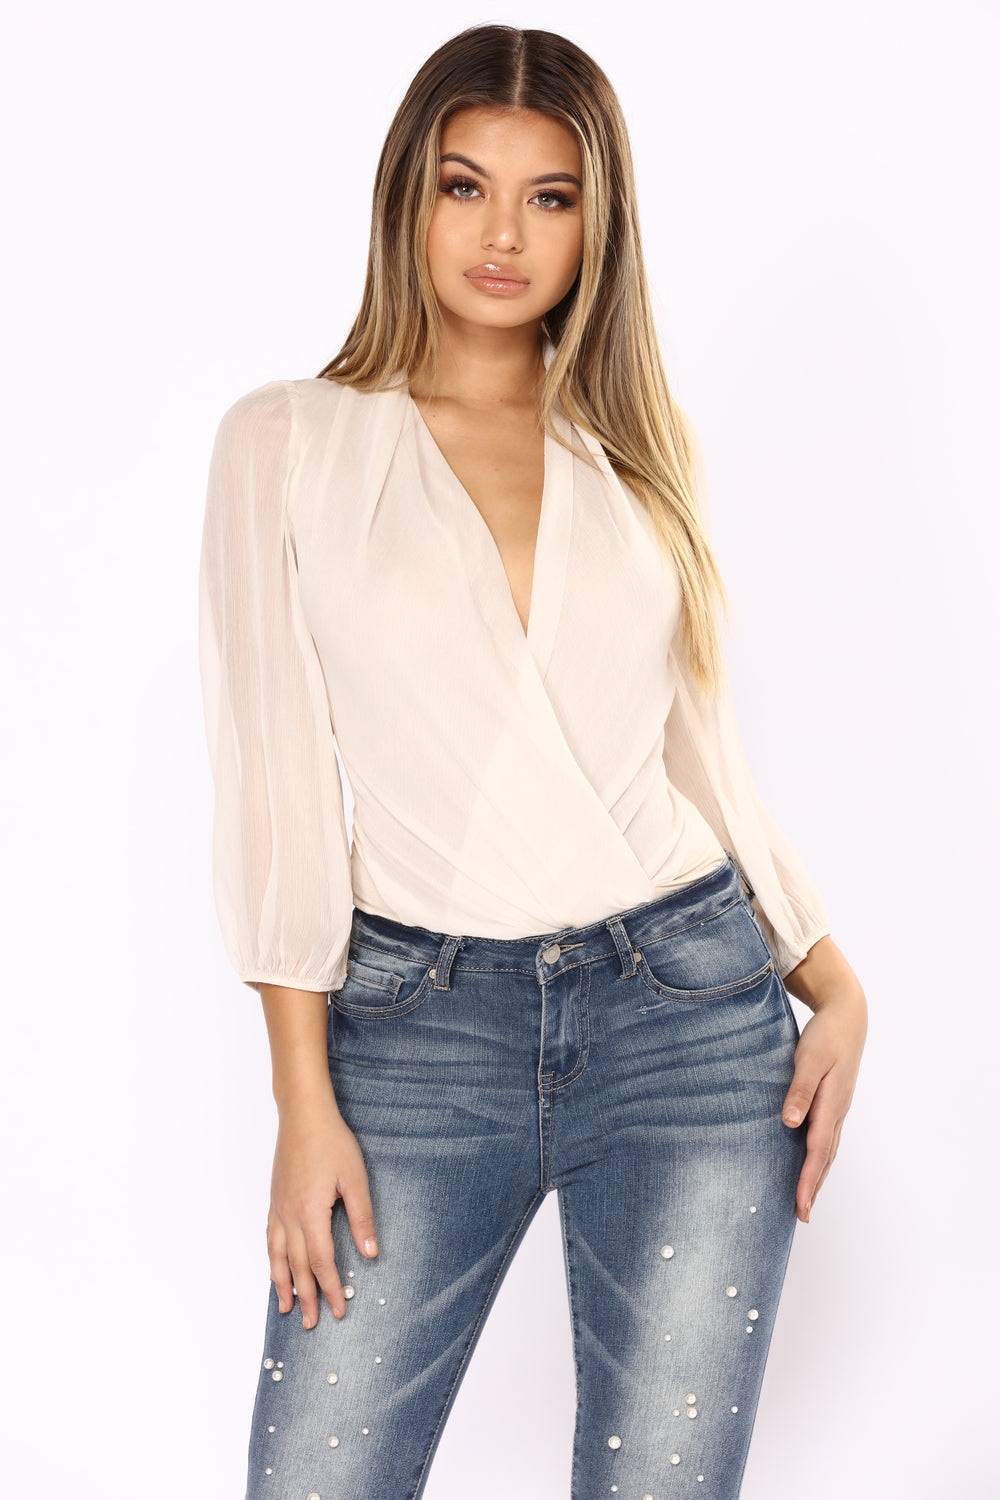 Go With The Flow Bodysuit - Ivory